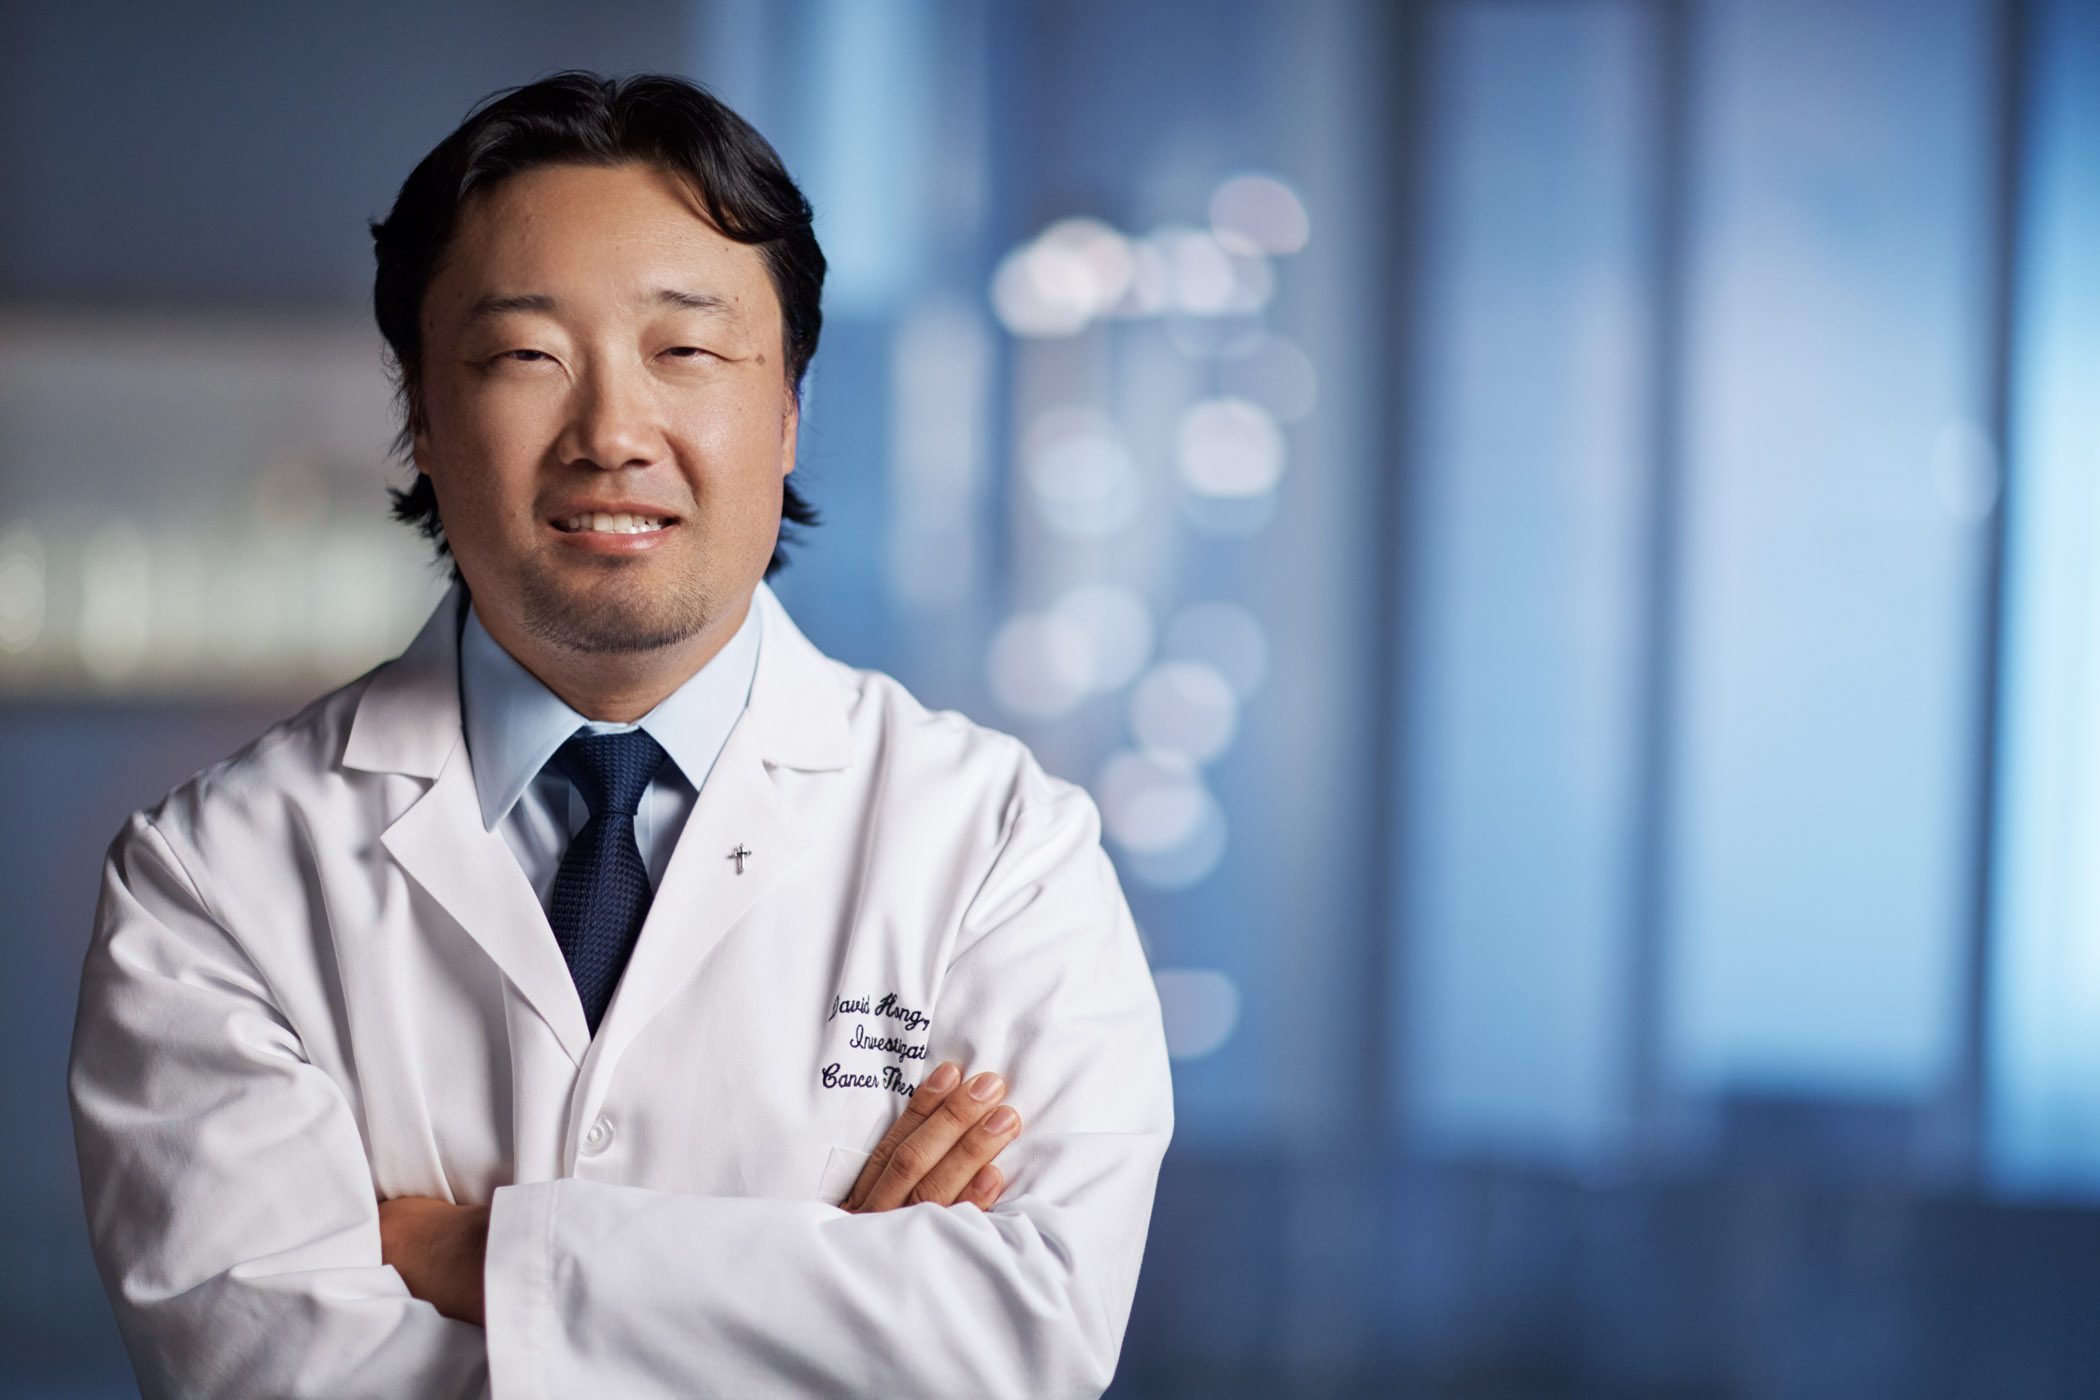 Cancerwise blog post: David Hong, M.D., discusses Phase I clinical trials